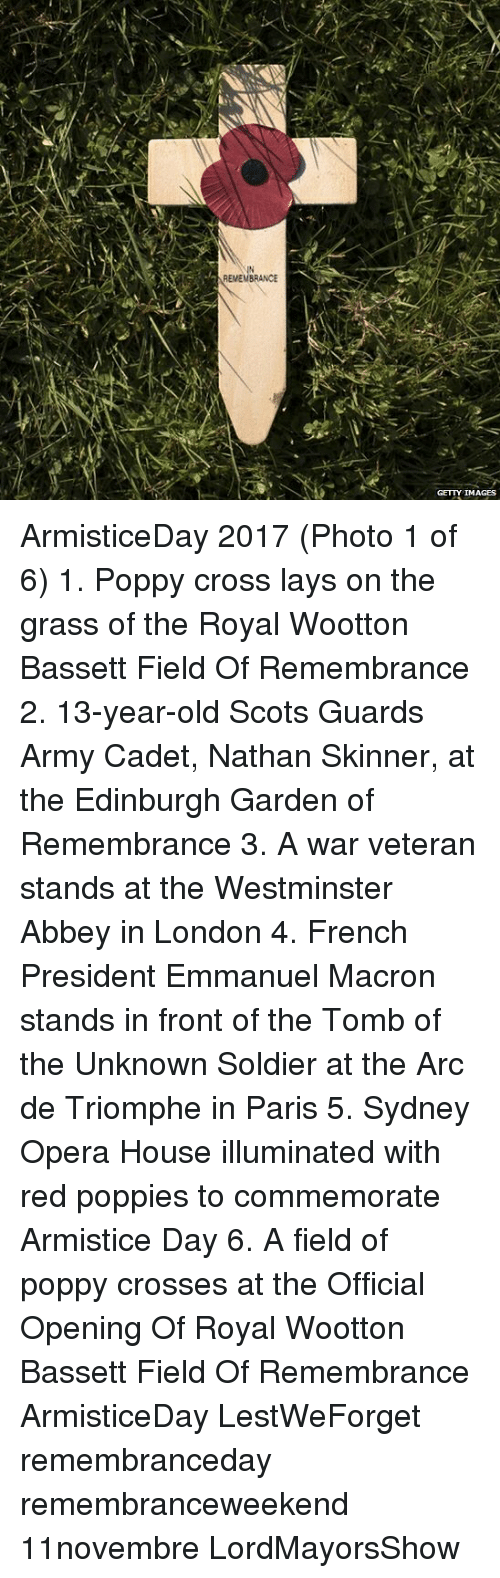 Poppies: IN  EMEMBRANCE  GETTY IMAGES ArmisticeDay 2017 (Photo 1 of 6) 1. Poppy cross lays on the grass of the Royal Wootton Bassett Field Of Remembrance 2. 13-year-old Scots Guards Army Cadet, Nathan Skinner, at the Edinburgh Garden of Remembrance 3. A war veteran stands at the Westminster Abbey in London 4. French President Emmanuel Macron stands in front of the Tomb of the Unknown Soldier at the Arc de Triomphe in Paris 5. Sydney Opera House illuminated with red poppies to commemorate Armistice Day 6. A field of poppy crosses at the Official Opening Of Royal Wootton Bassett Field Of Remembrance ArmisticeDay LestWeForget remembranceday remembranceweekend 11novembre LordMayorsShow